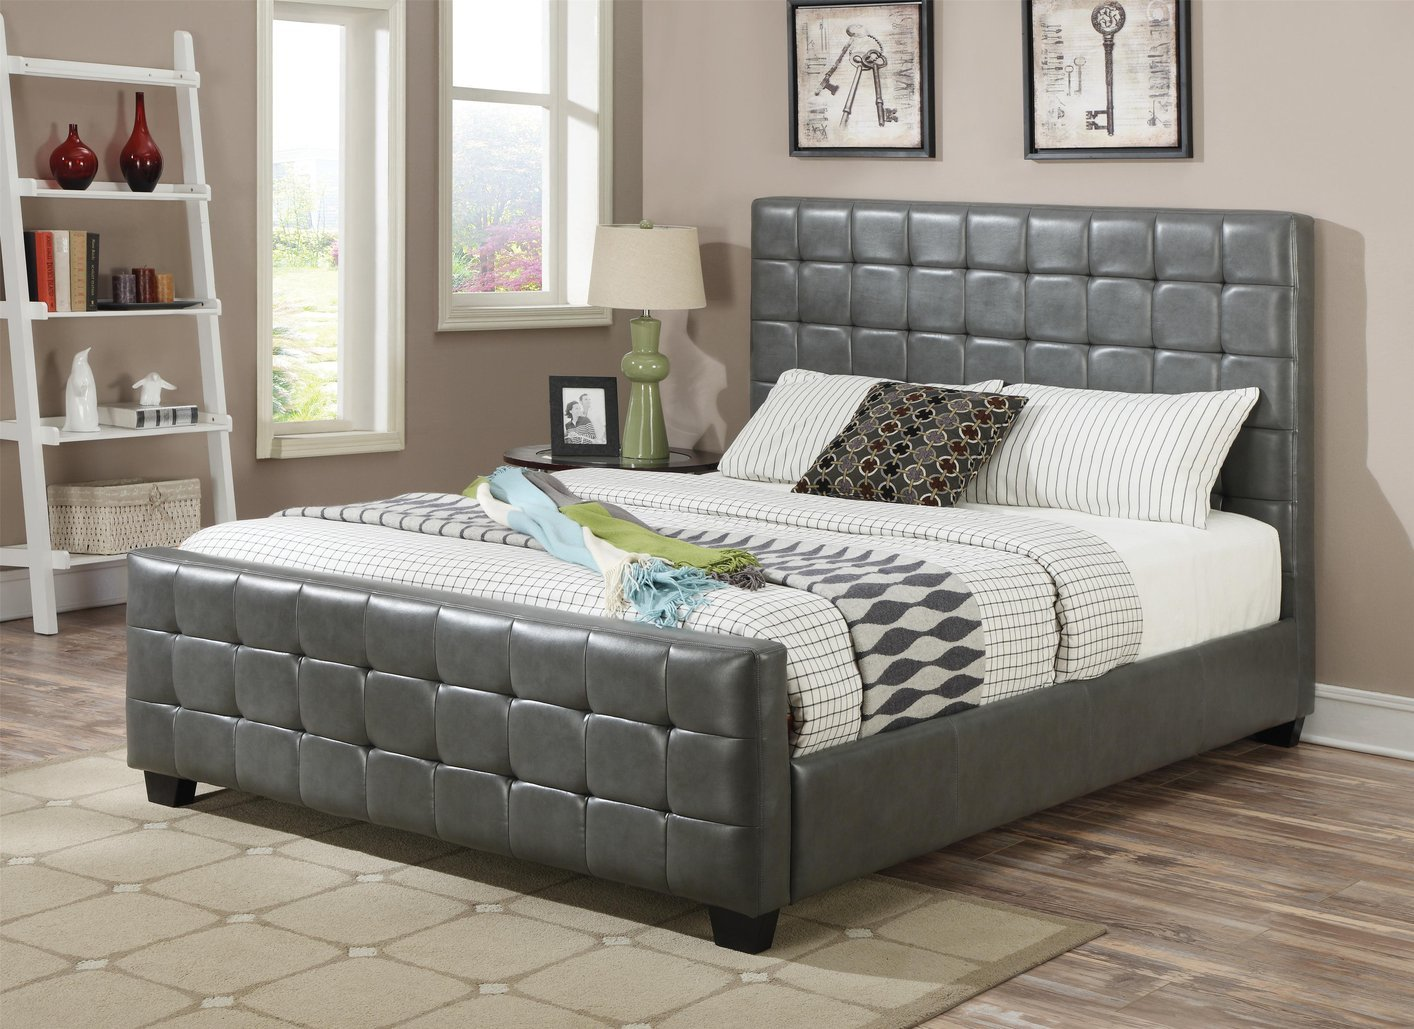 Grey Leather California King Size Bed Steal A Sofa